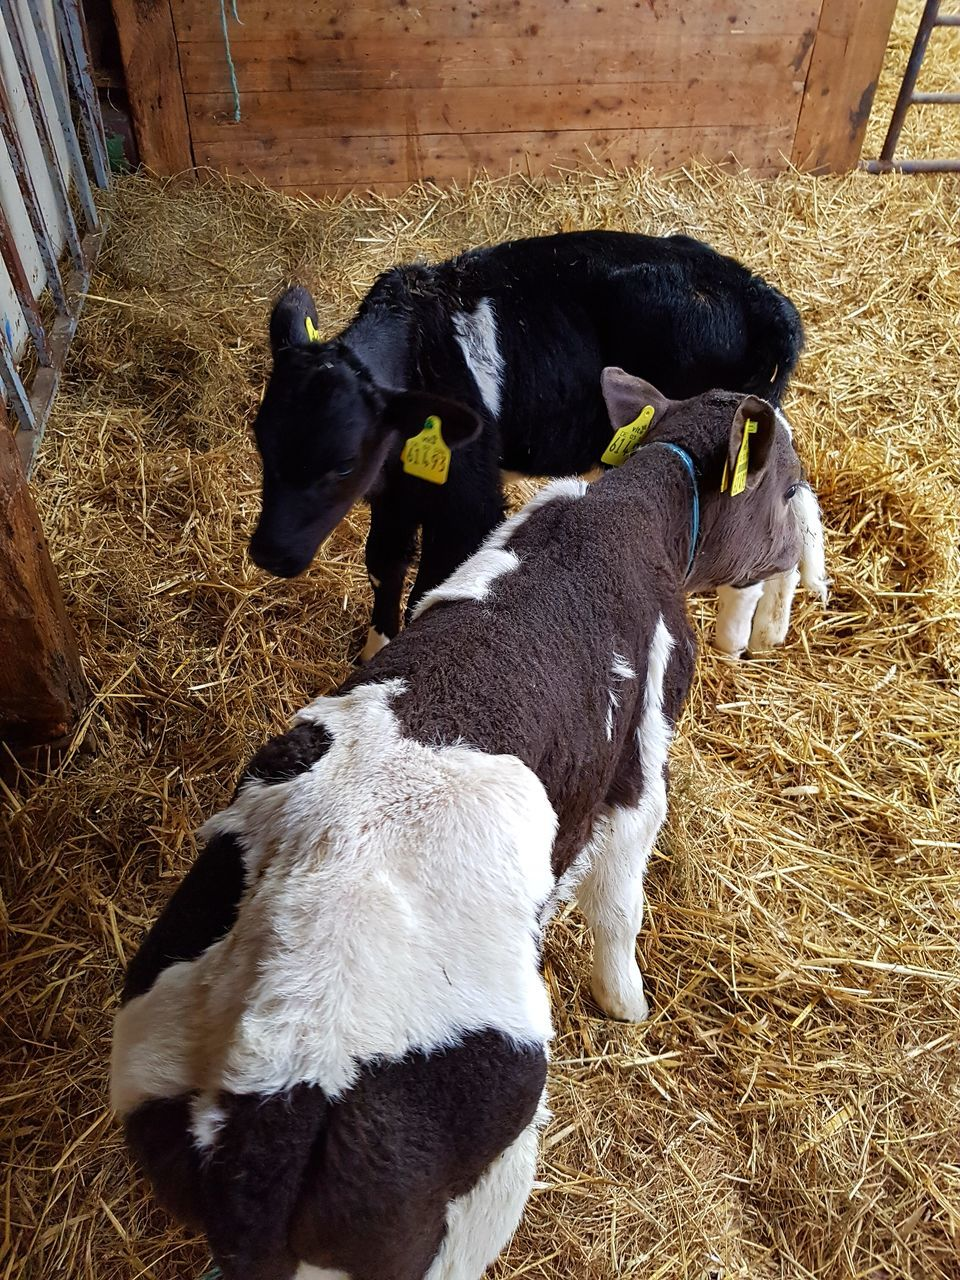 pets, domestic, domestic animals, mammal, animal themes, group of animals, animal, vertebrate, livestock, hay, high angle view, cattle, plant, cow, young animal, no people, shed, straw, goat, indoors, herbivorous, animal pen, animal family